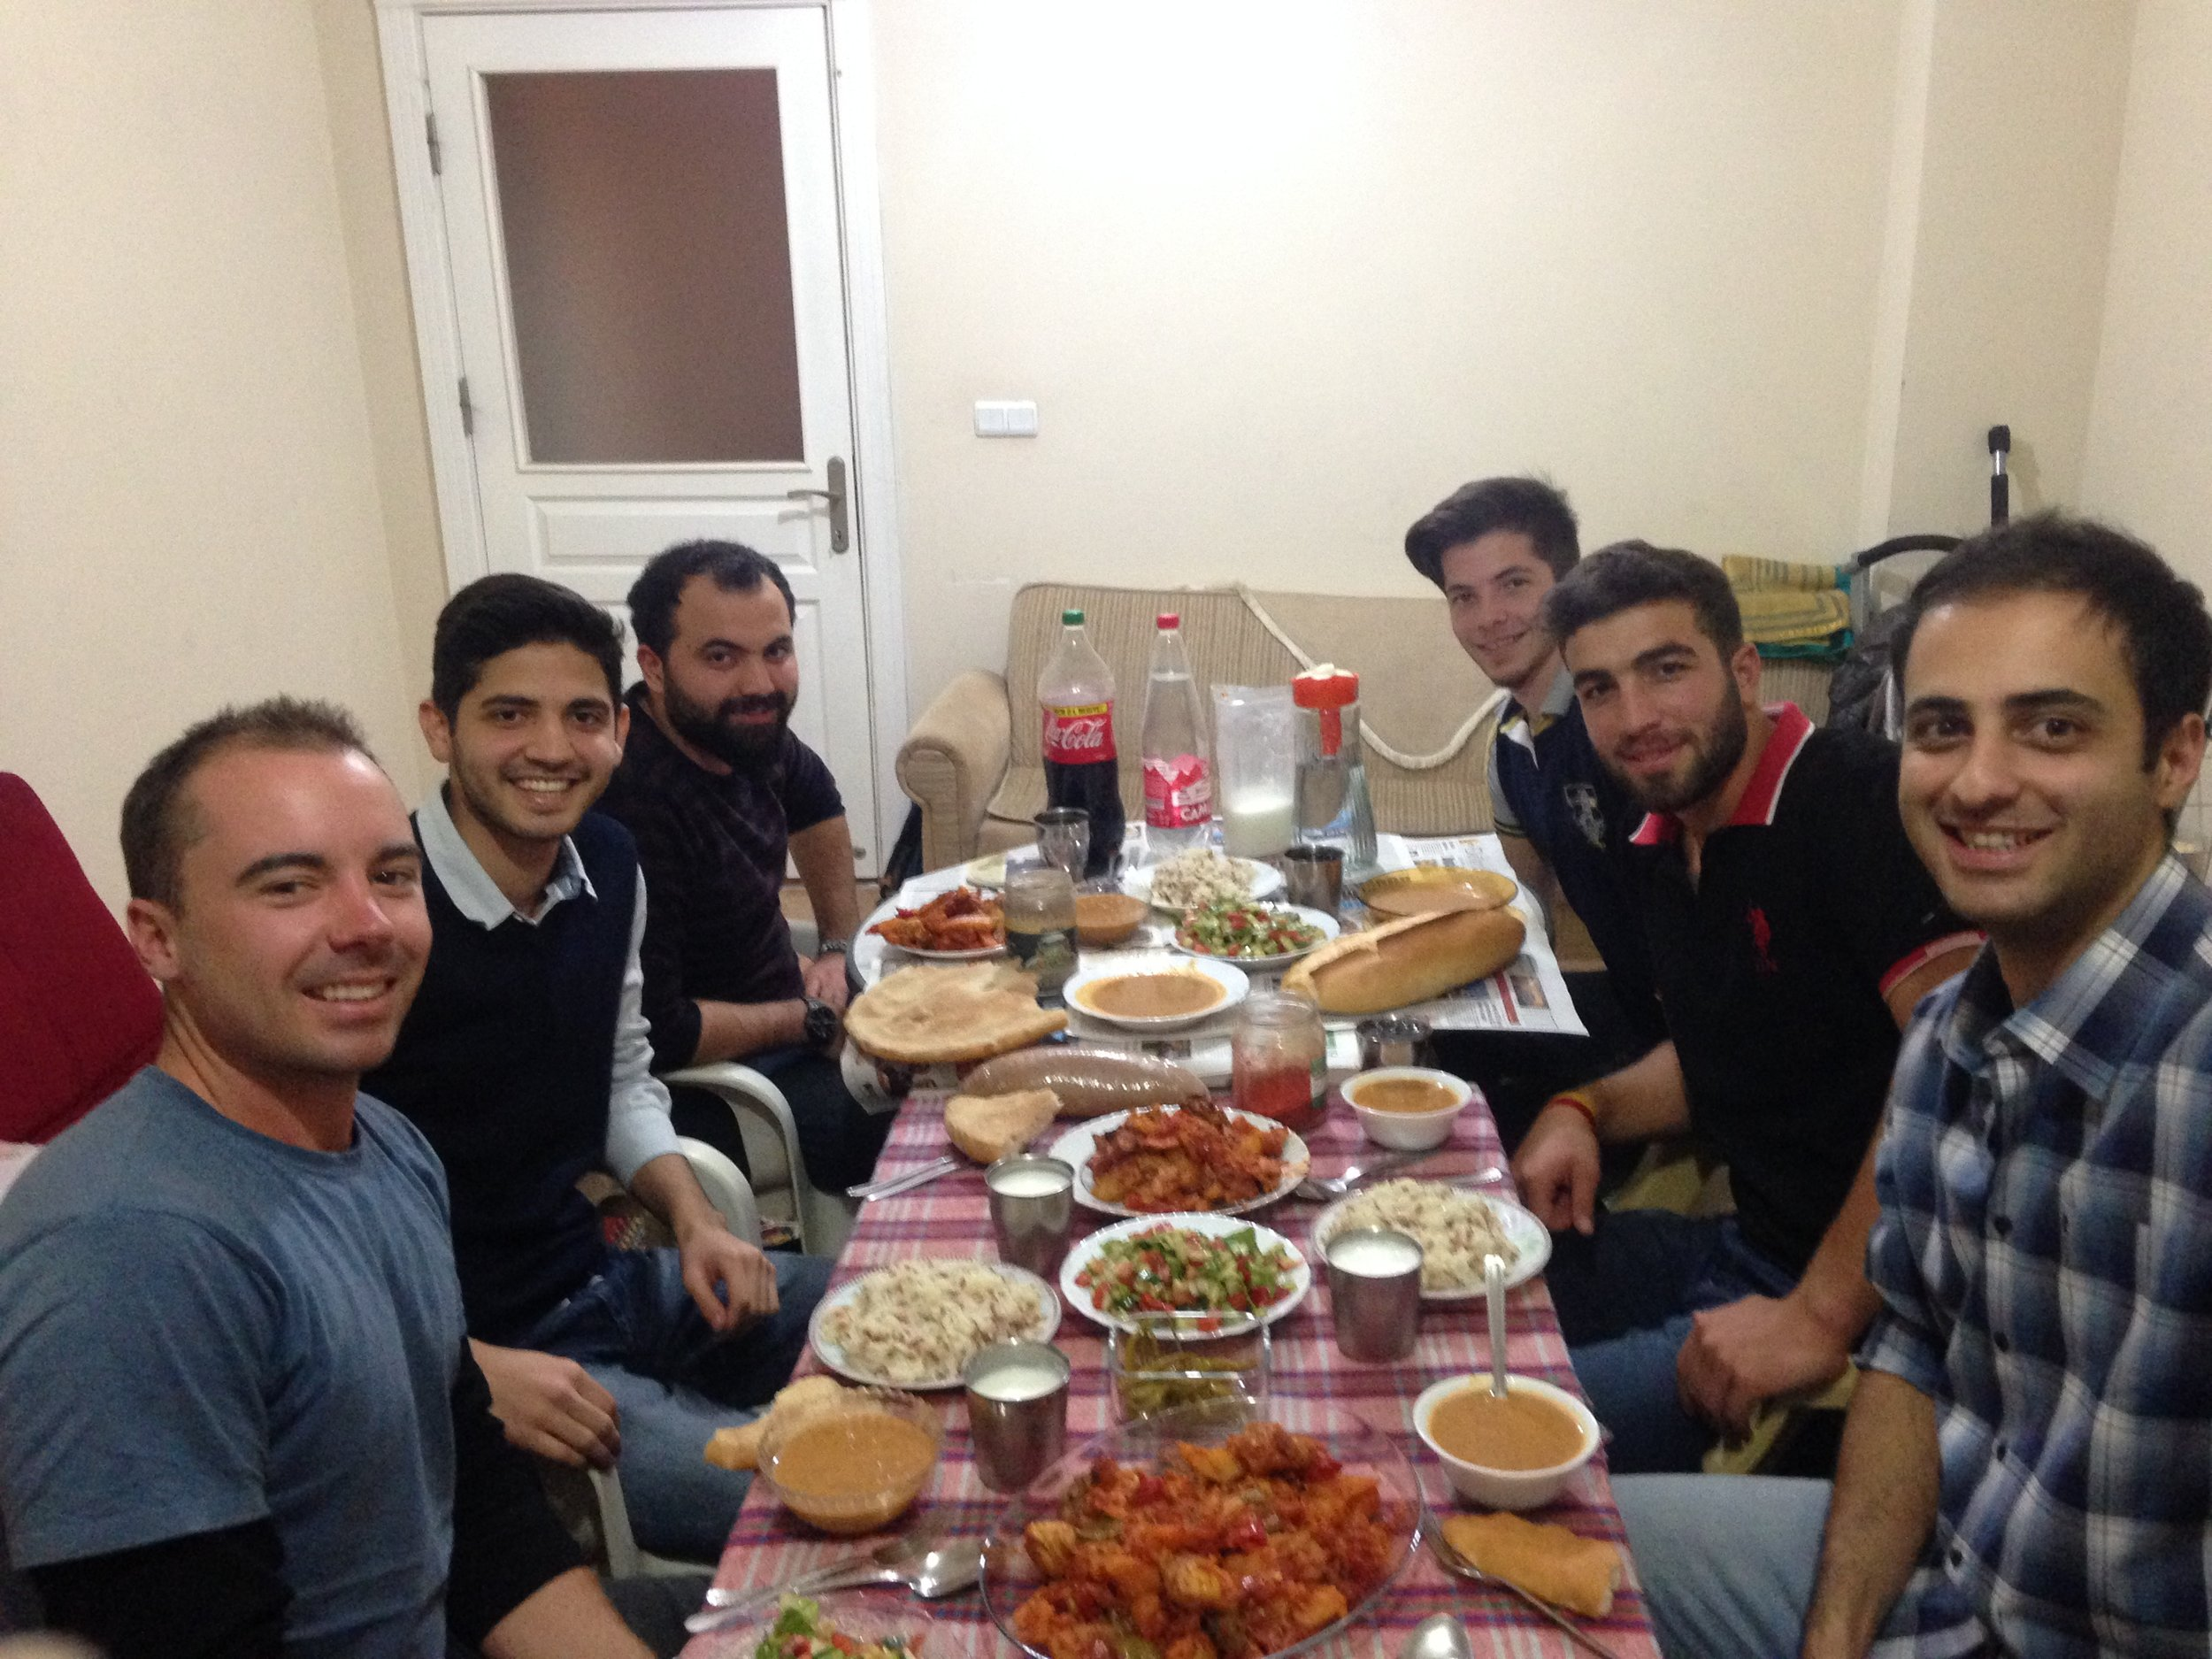 An epic feast with our couch surfing hosts in Ardahan. every cyclists dream